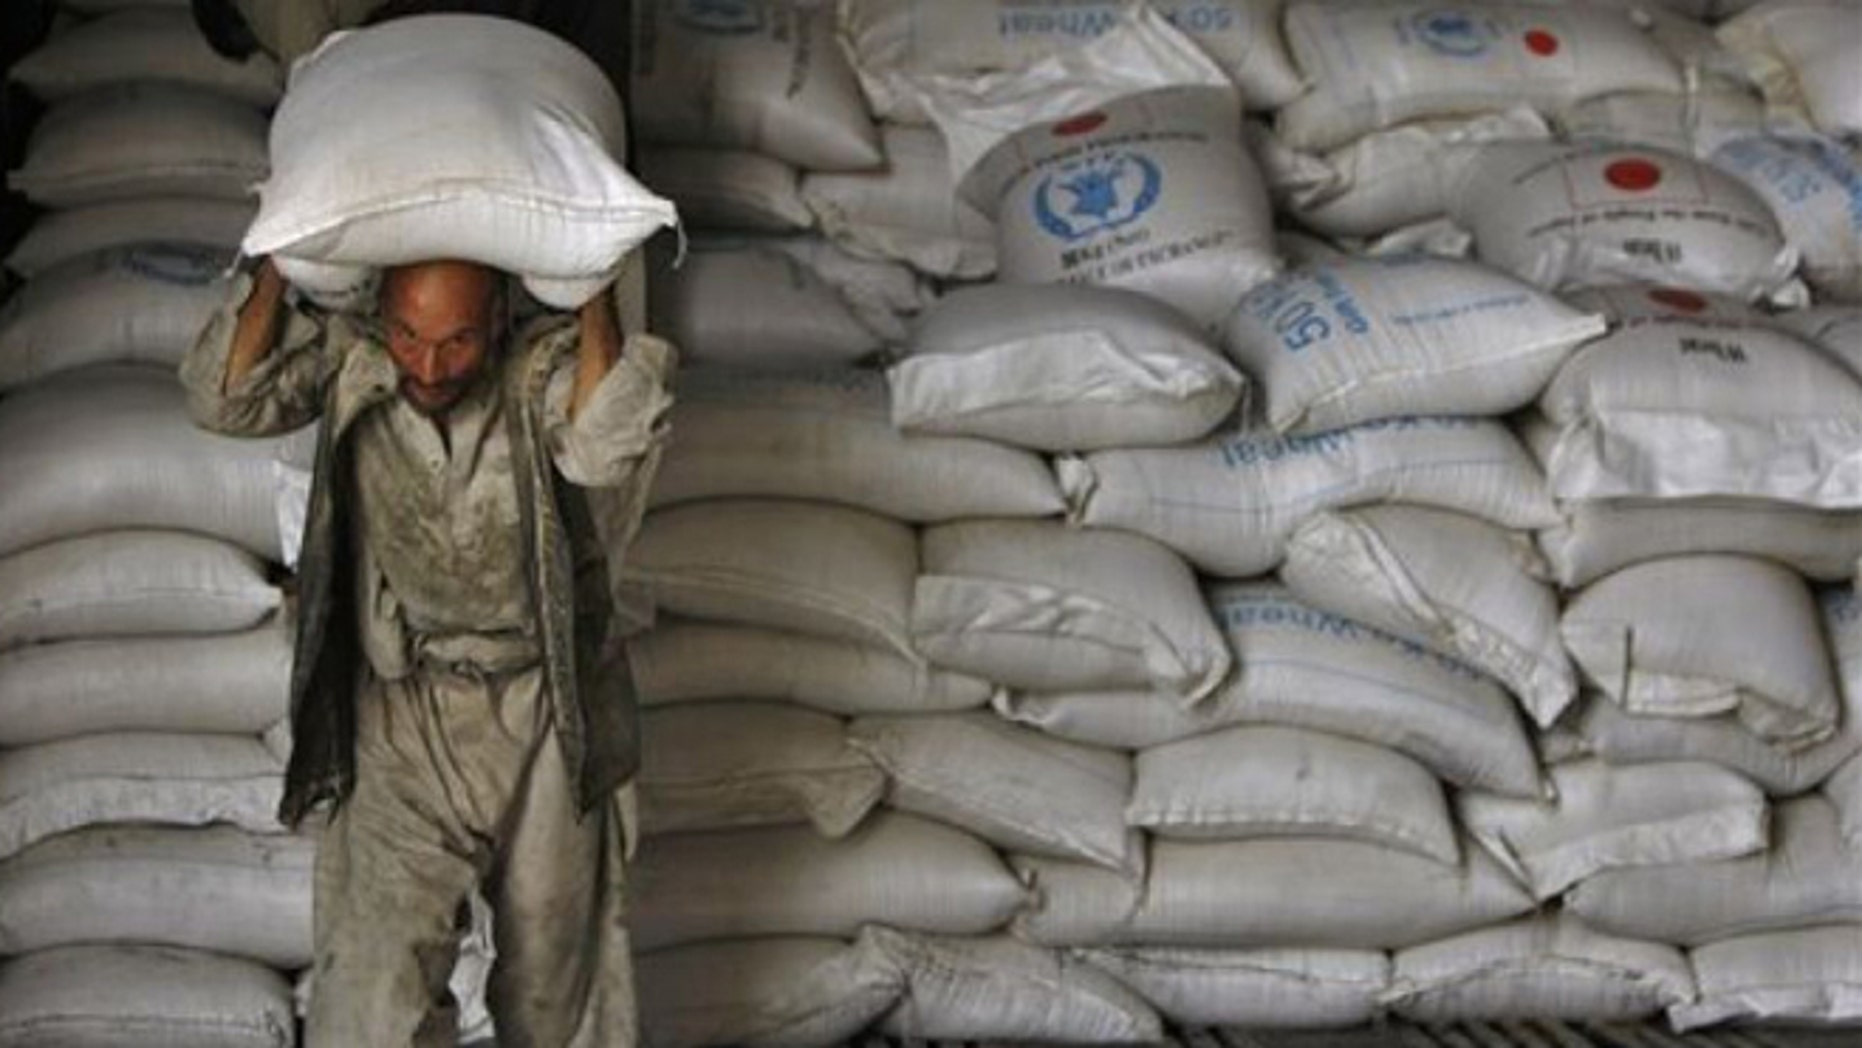 June 27: An Afghan man carries a sack of wheat from a UN World Food Programme warehouse. Due to budget constraints, on June 27th the UN announced that it would be force to cut food assistance to more than 3 million Afghan people. (AP)